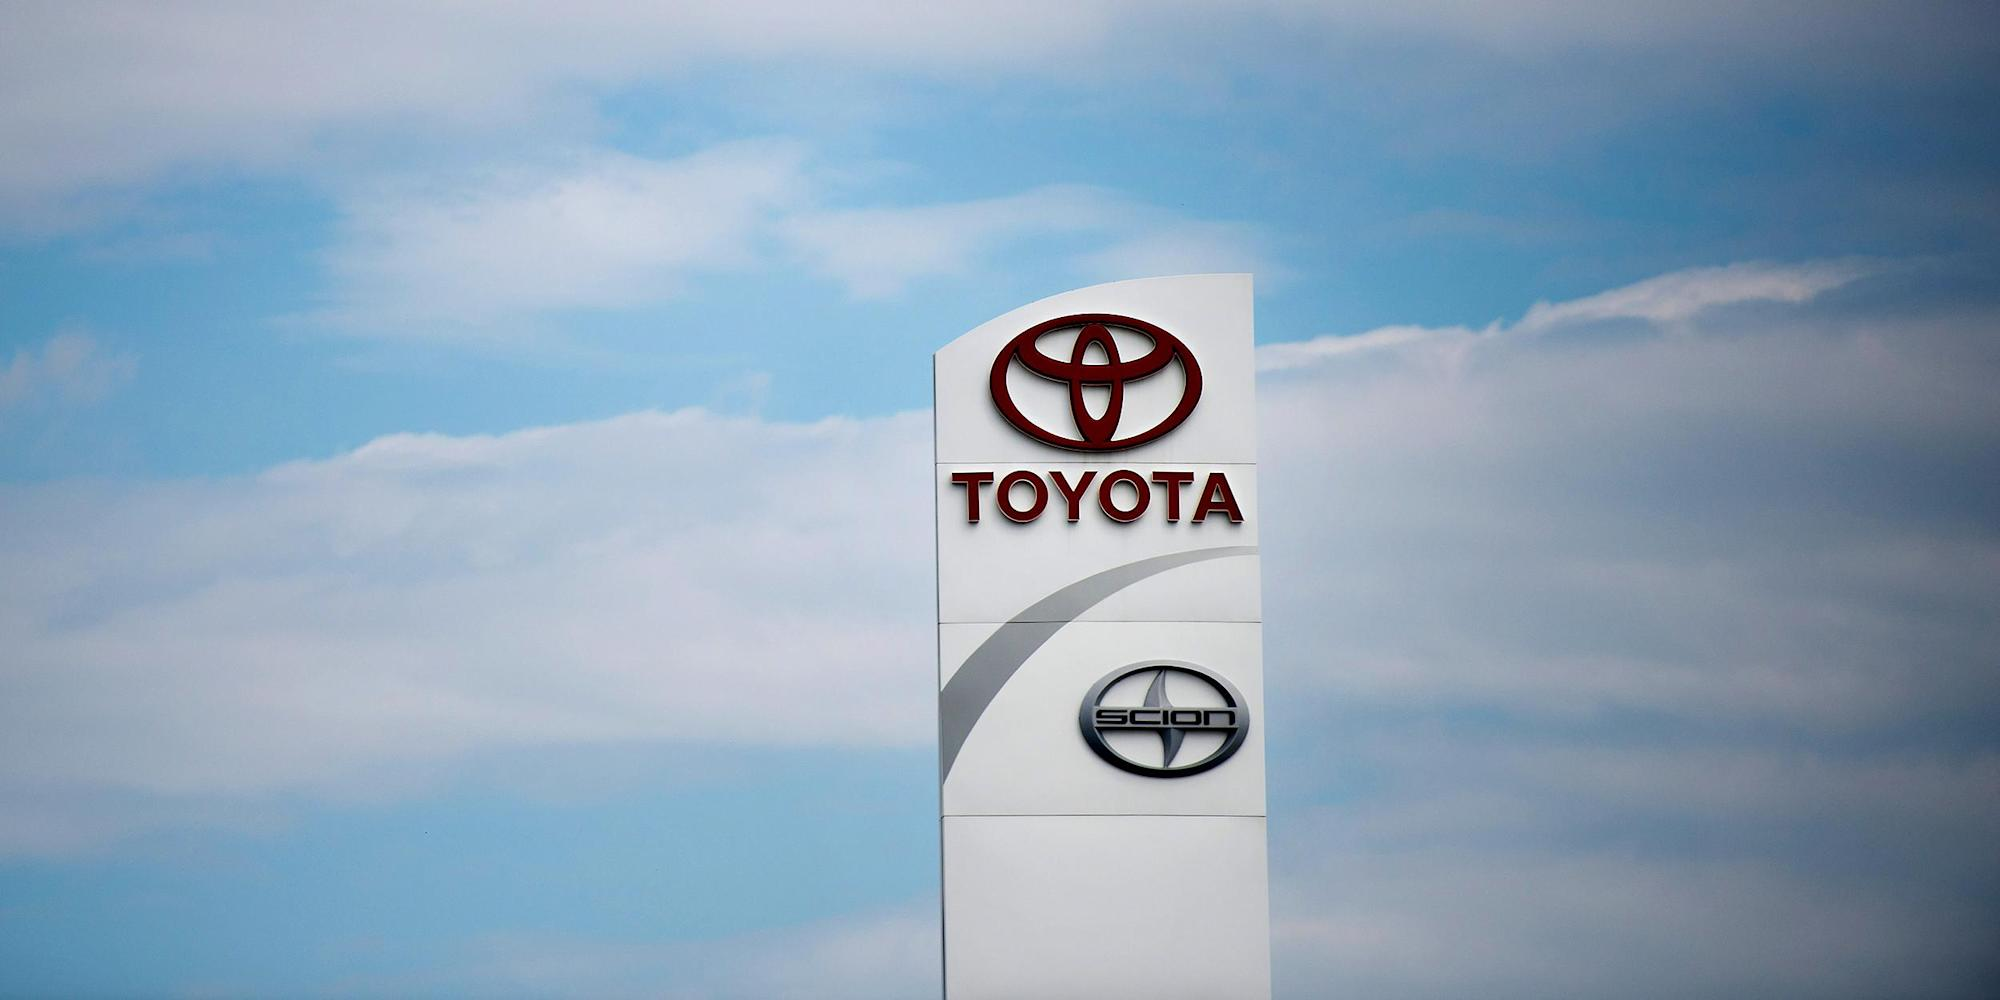 Toyota will stop donating to Republicans who objected to election certification